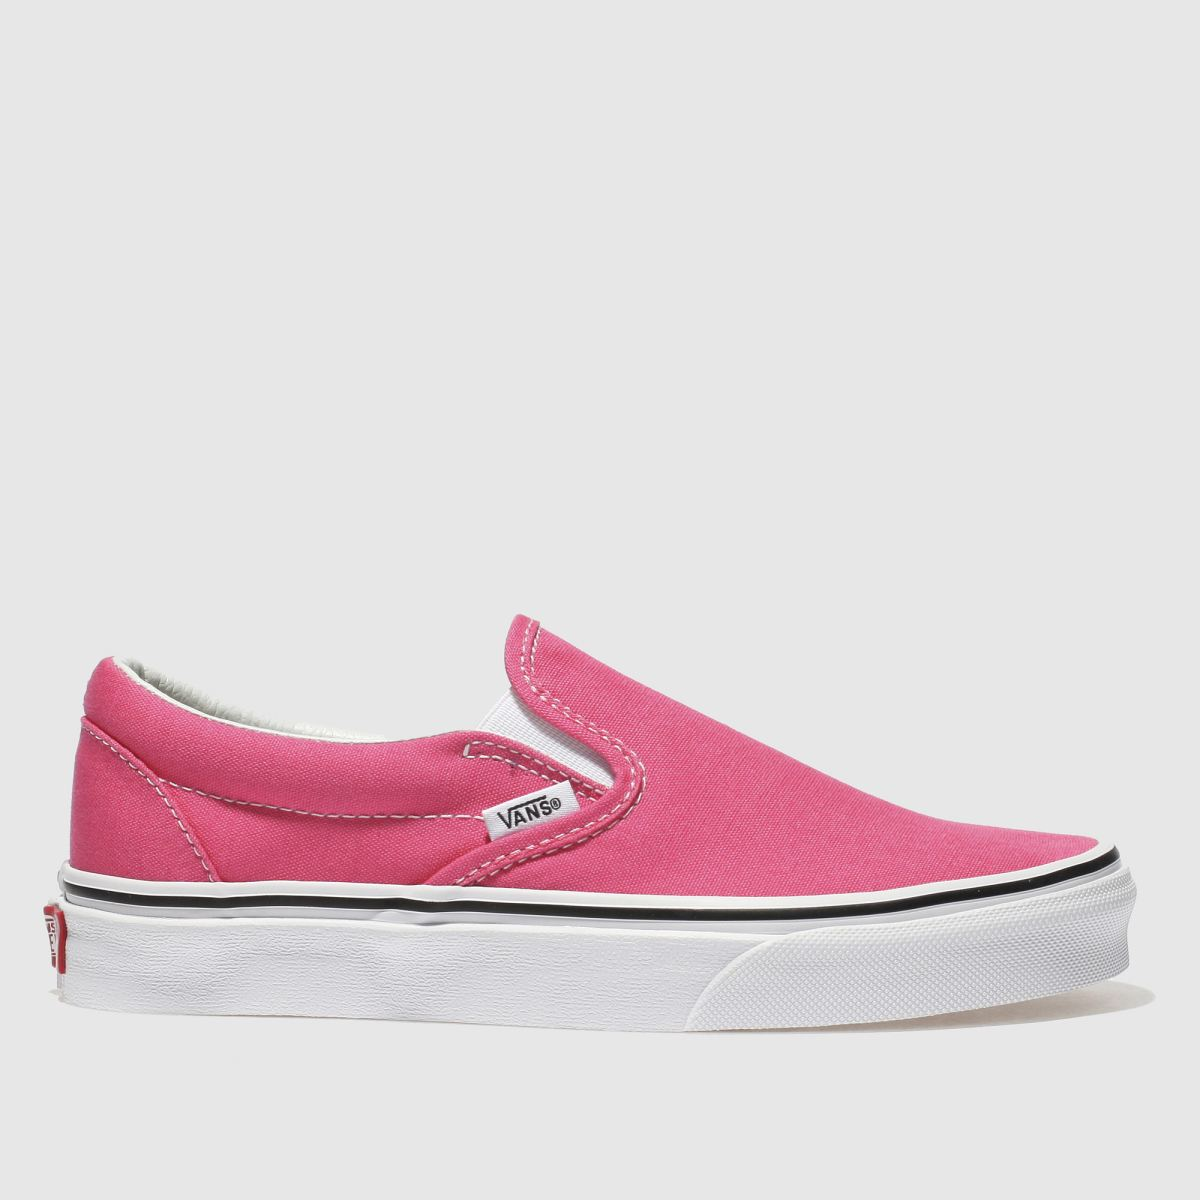 Vans Pink Classic Slip-on Trainers